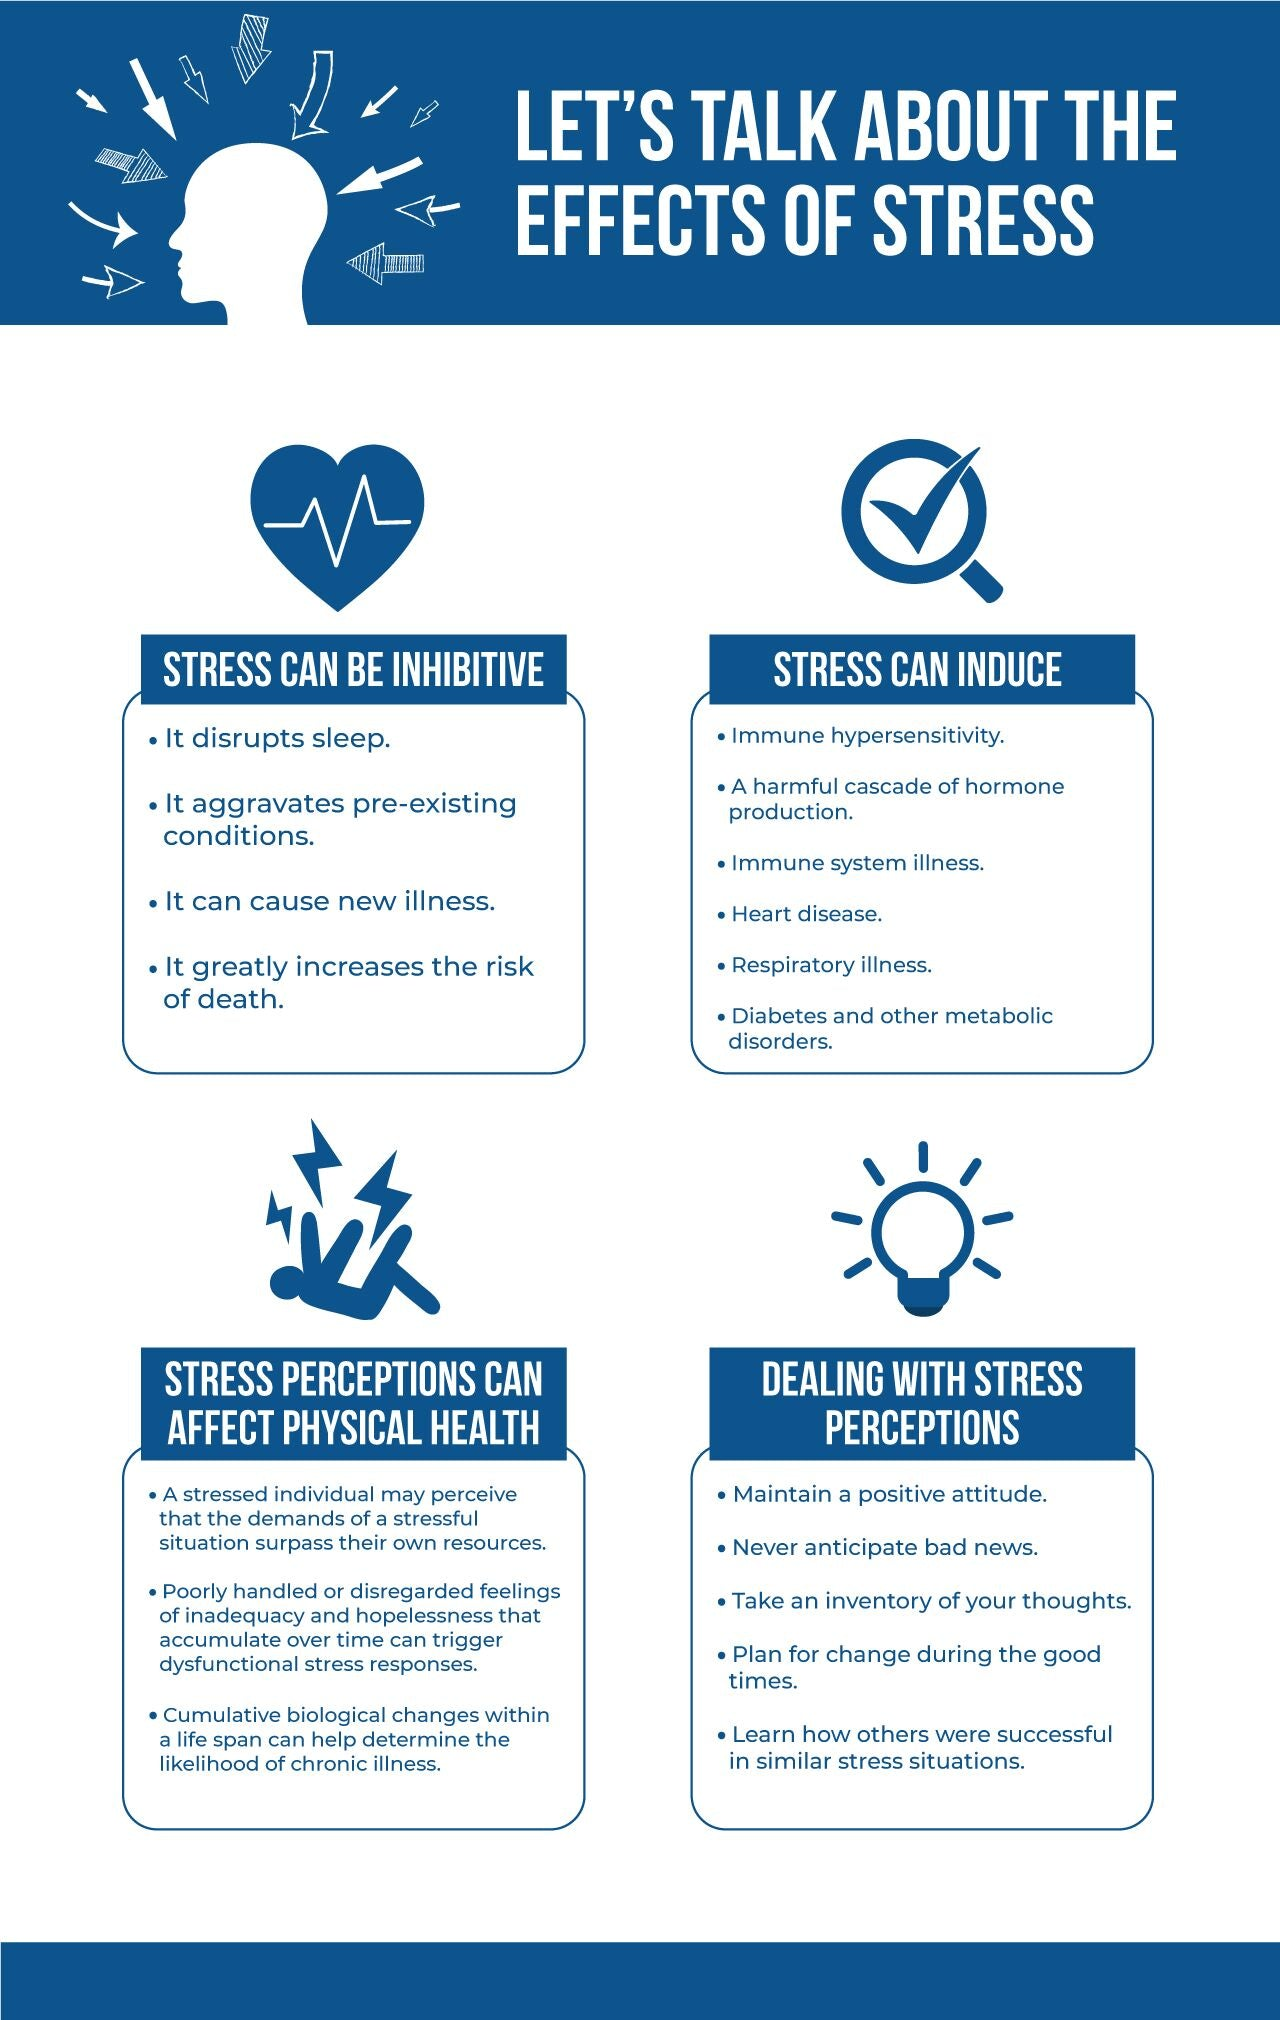 Dealing with the effects of stress.